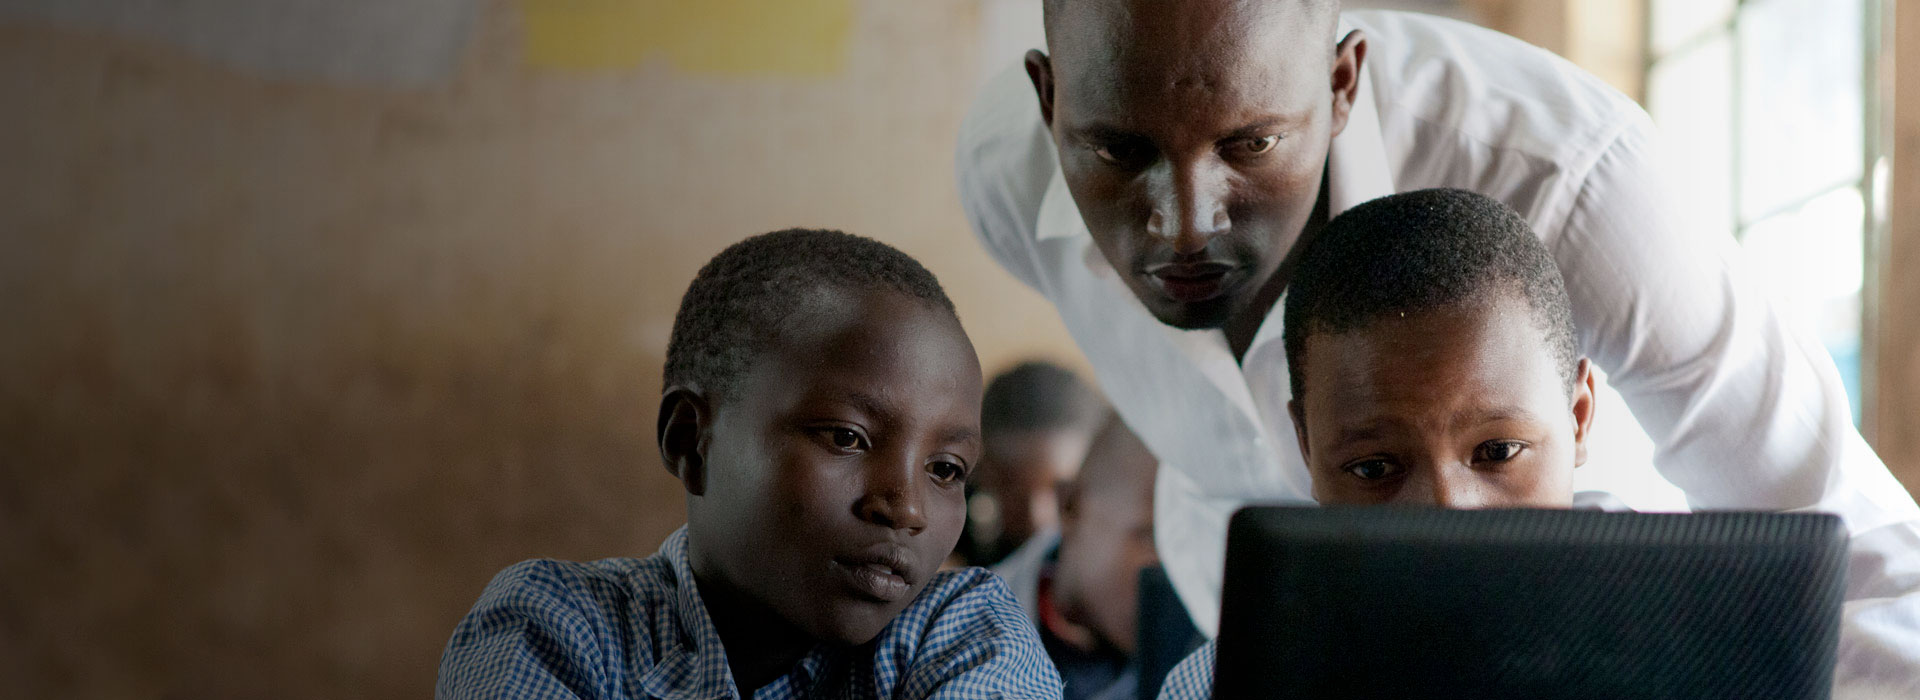 Digital math classes Tanzania